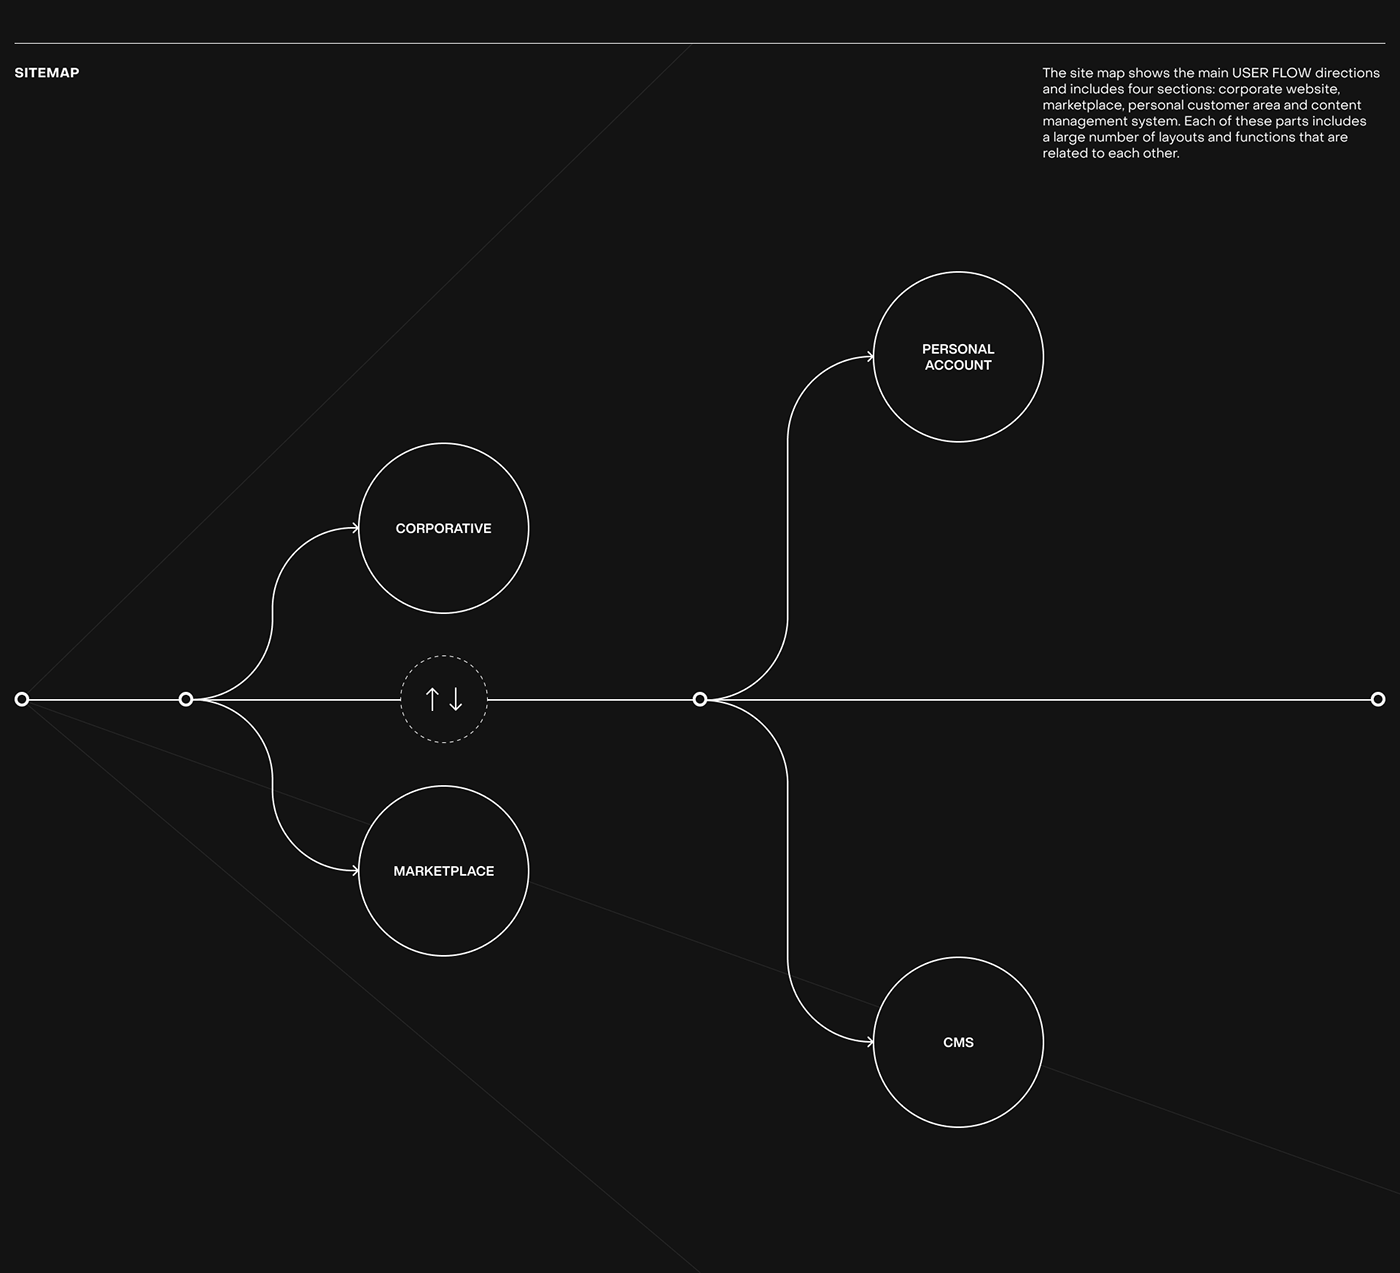 The site map shows the main USER FLOW directions